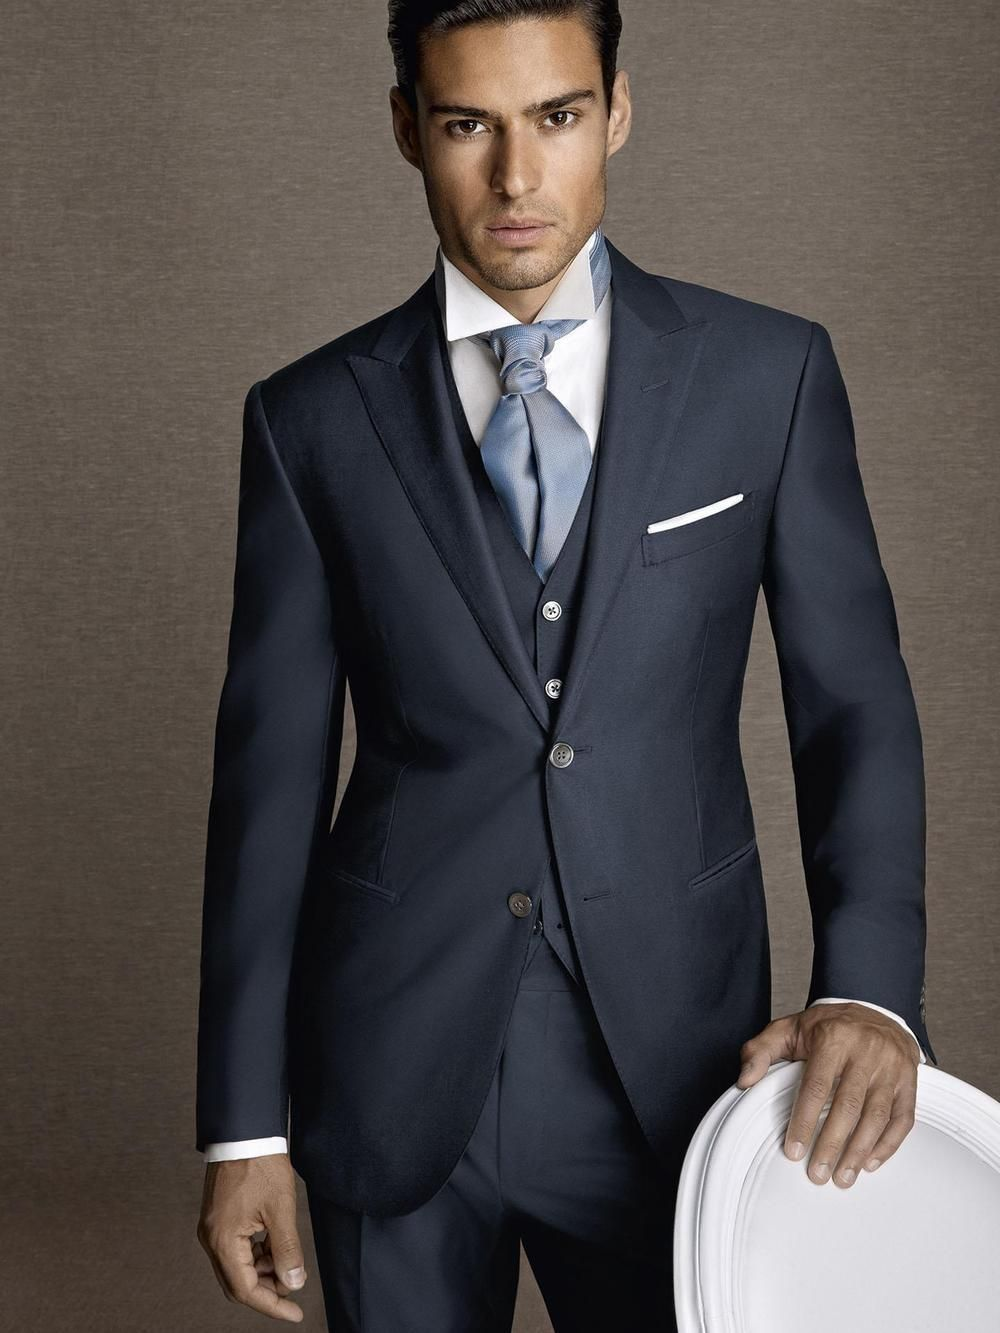 1000  images about Things to Wear on Pinterest | Suits, Midnight